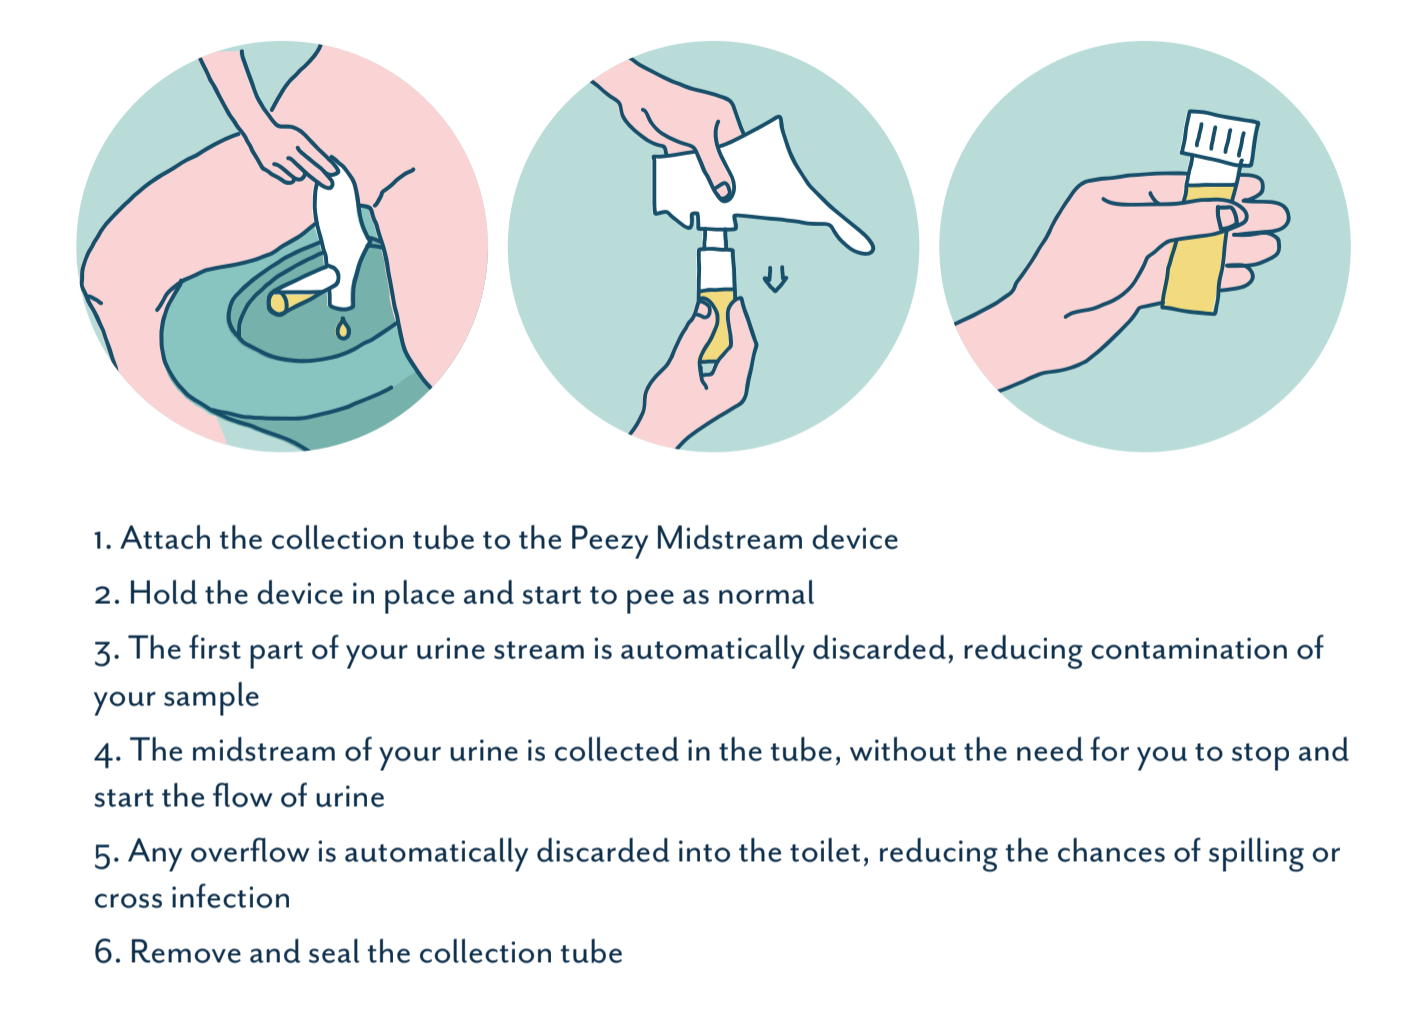 Clean catch urine - Peezy Midstream collection instructions